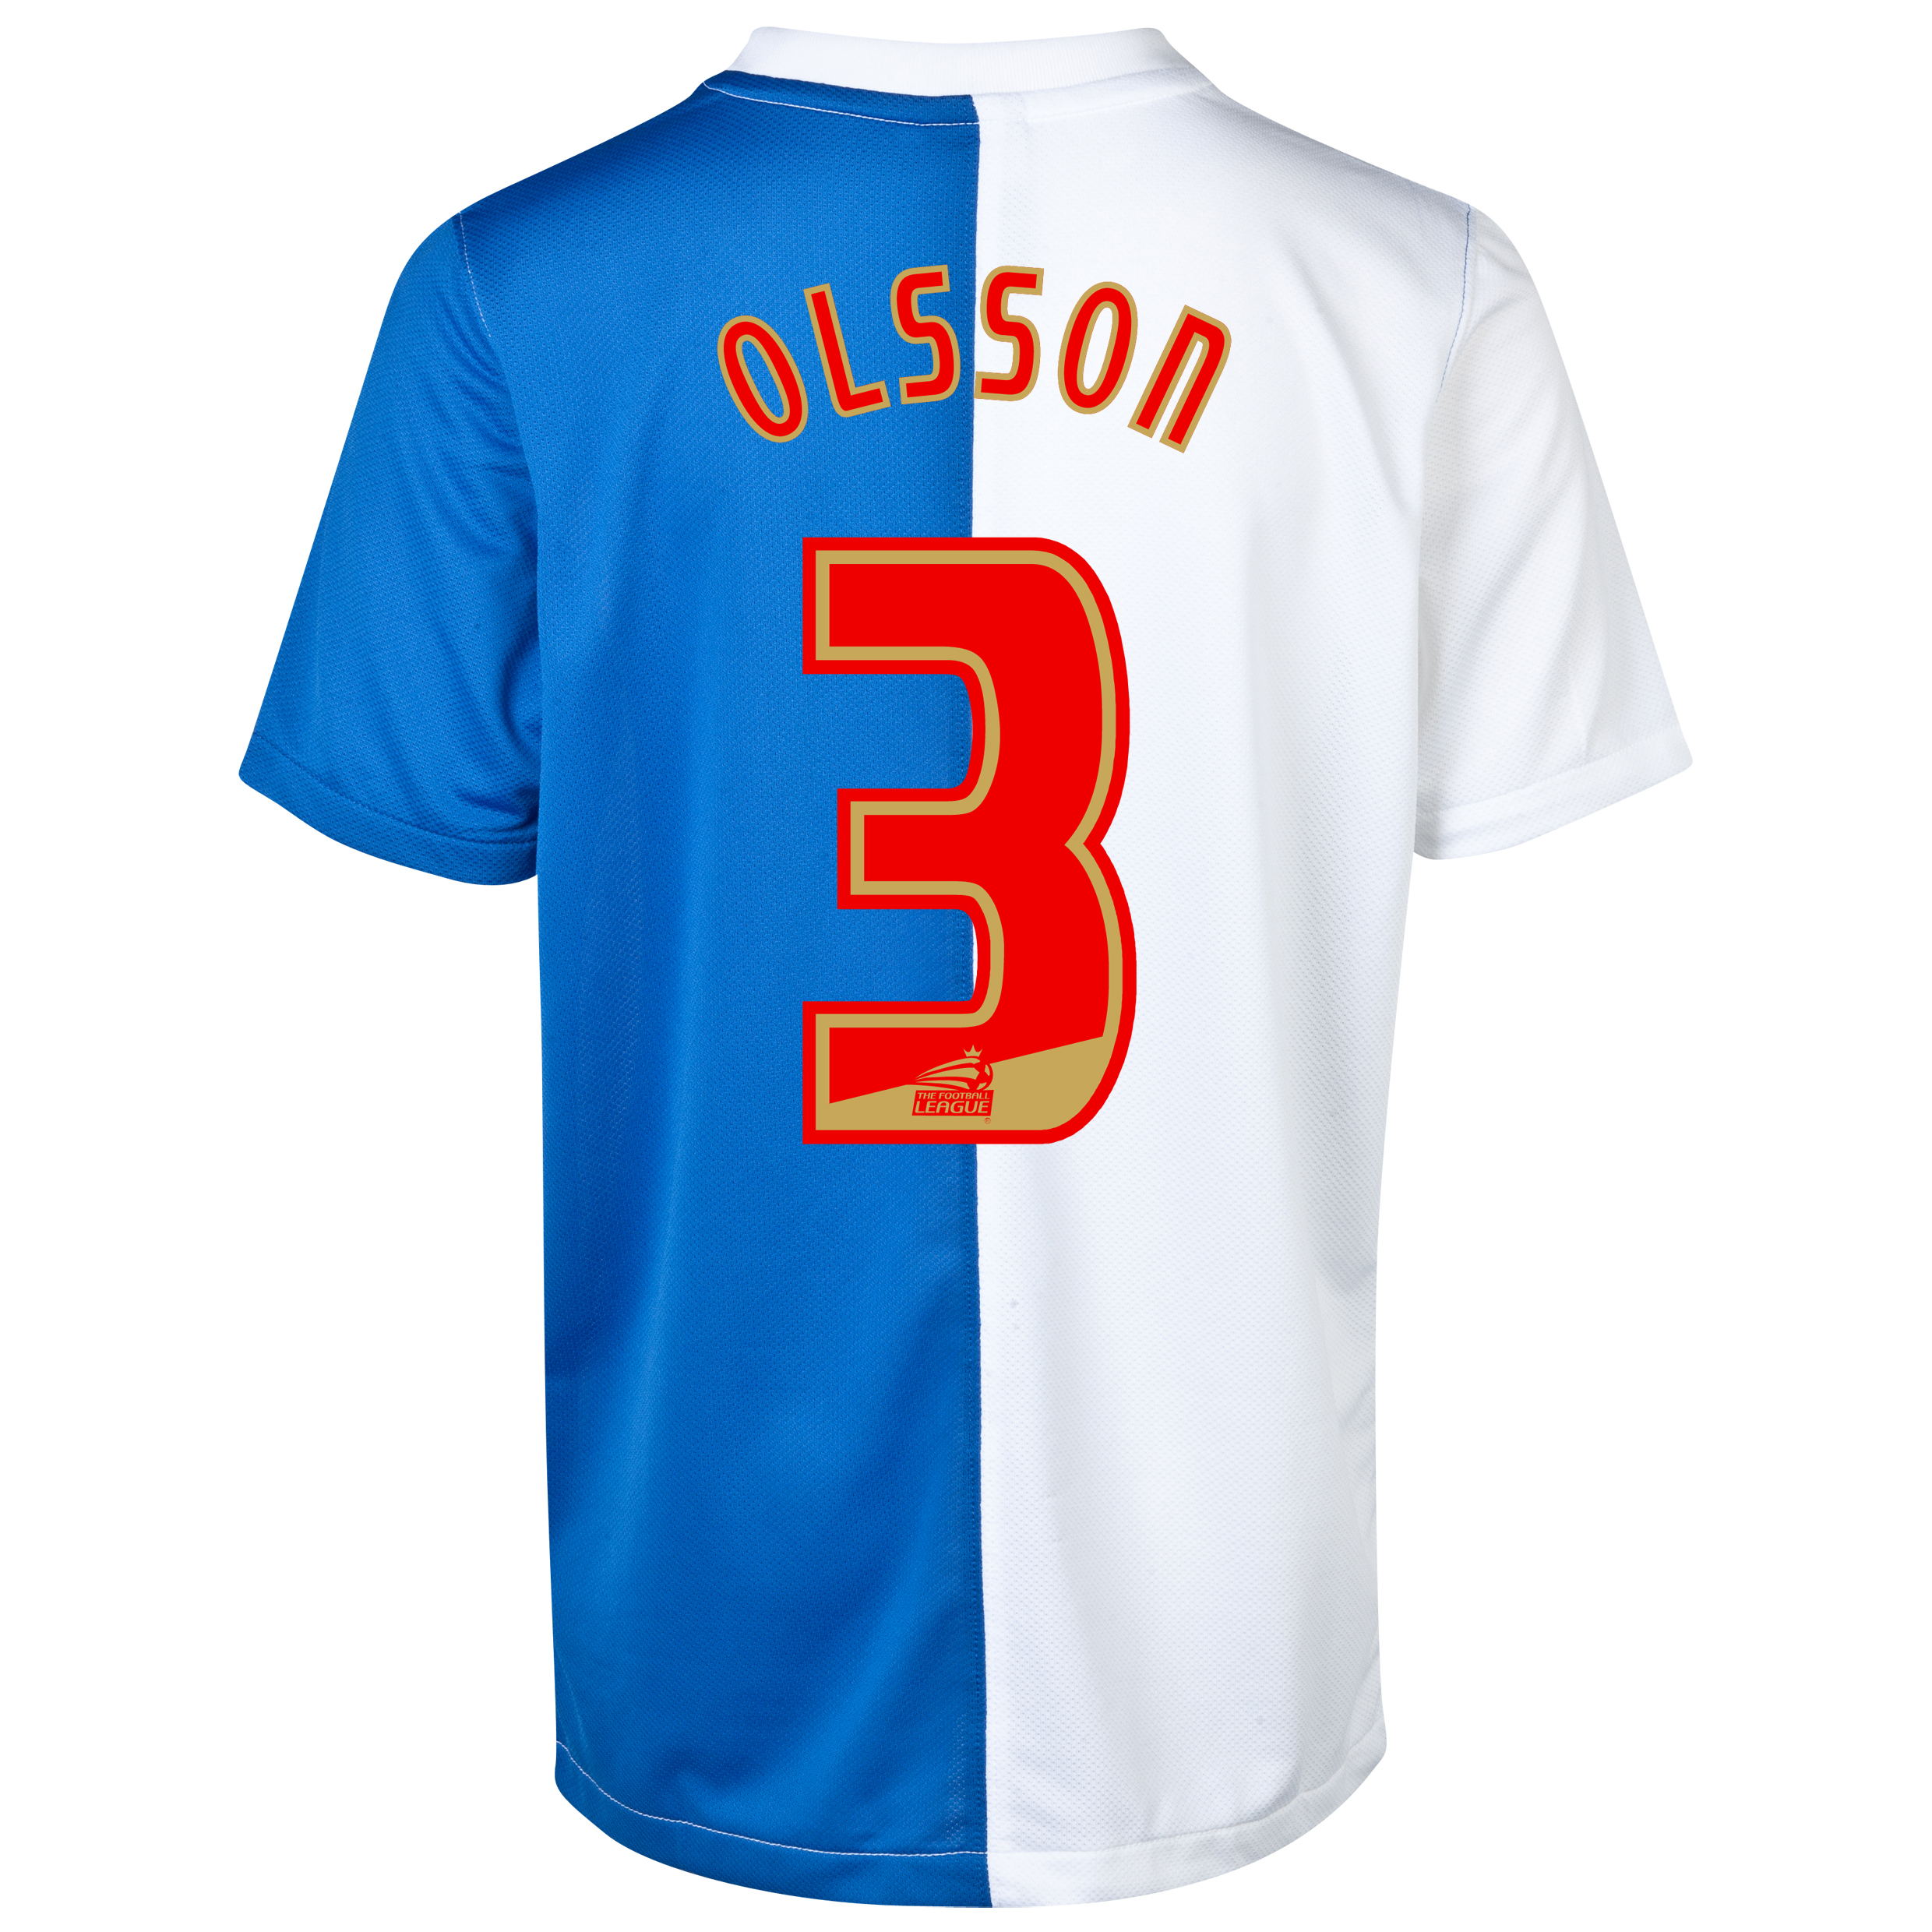 Blackburn Rovers Home Shirt 2013/14 with Olsson 3 printing